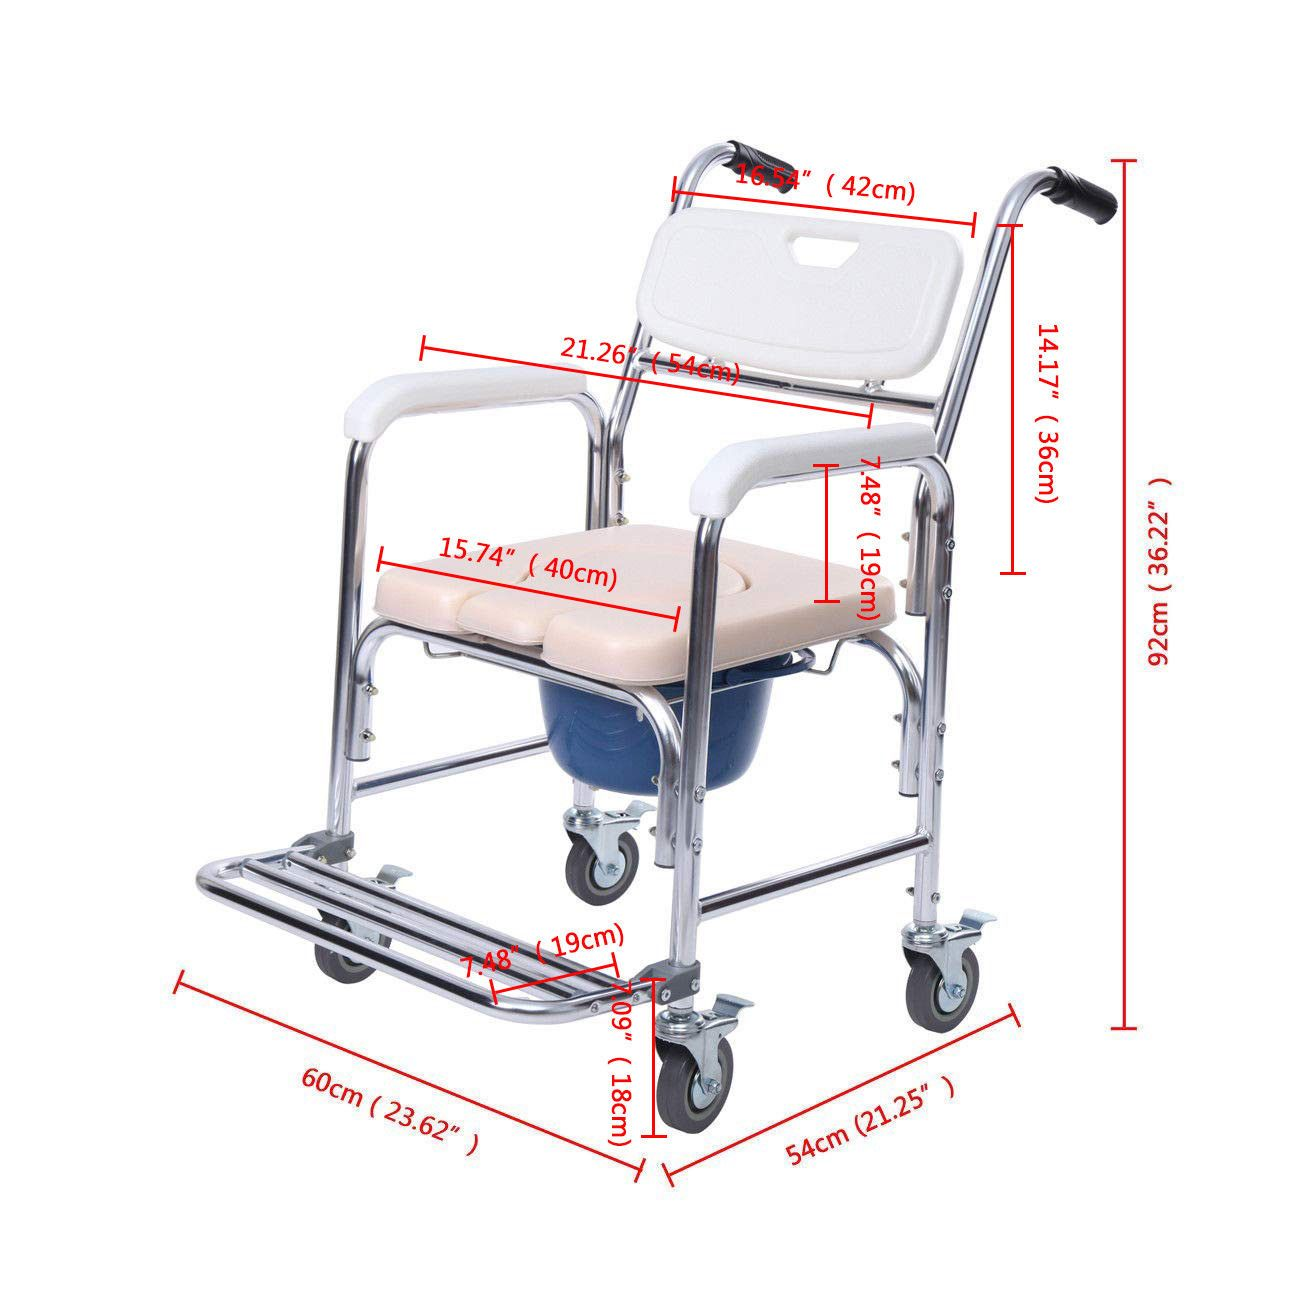 Details about Aluminum Mobile Shower Commode Chair Bedside